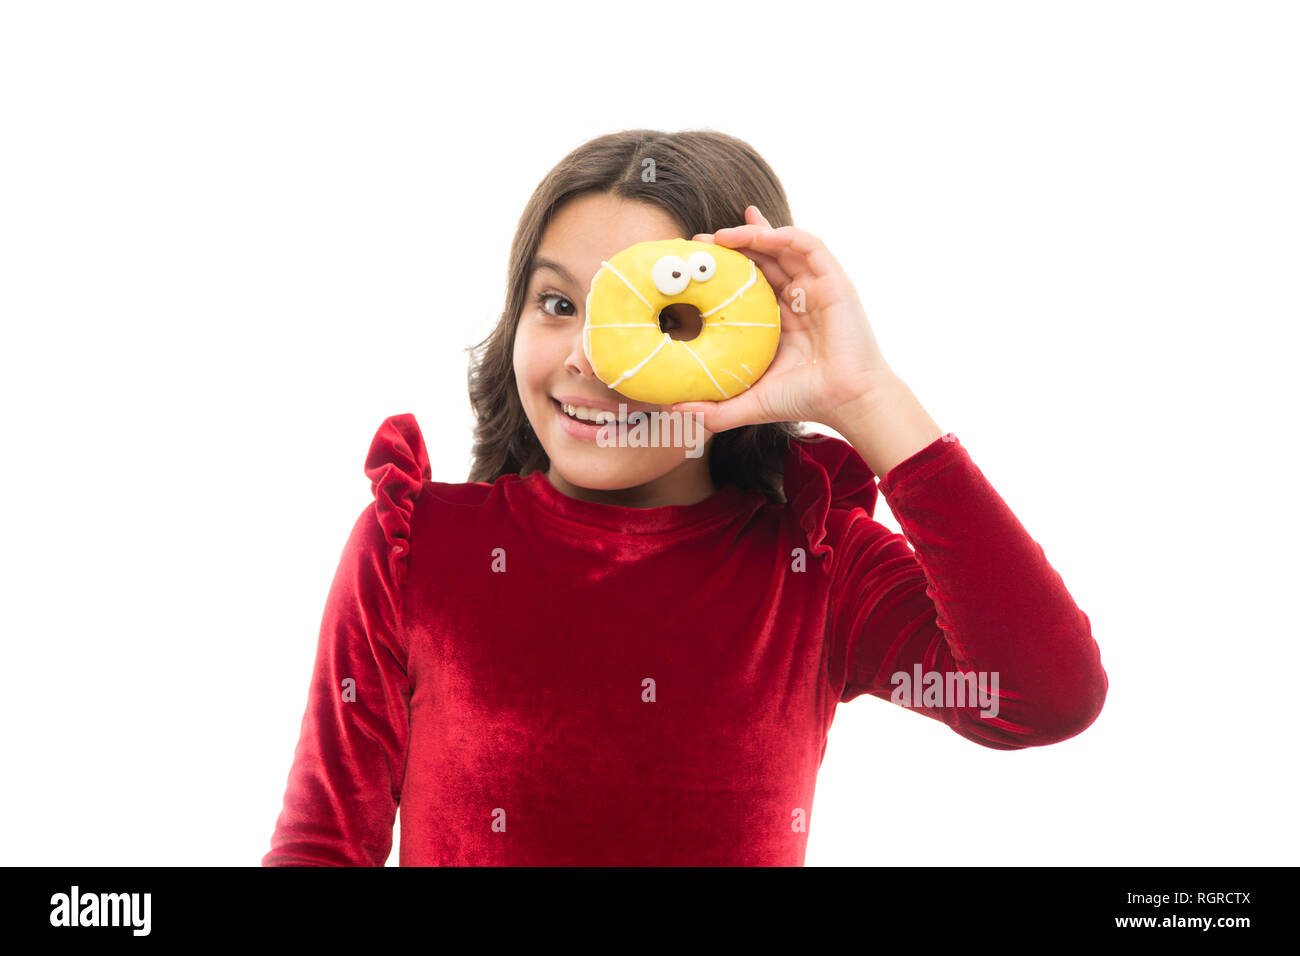 Happy childhood and sweet treats. Breaking diet concept. Girl hold sweet donut white background. Child hungry for sweet donut. Sugar levels and healthy nutrition. Nutritionist advice. Sweet obsession. - Stock Image